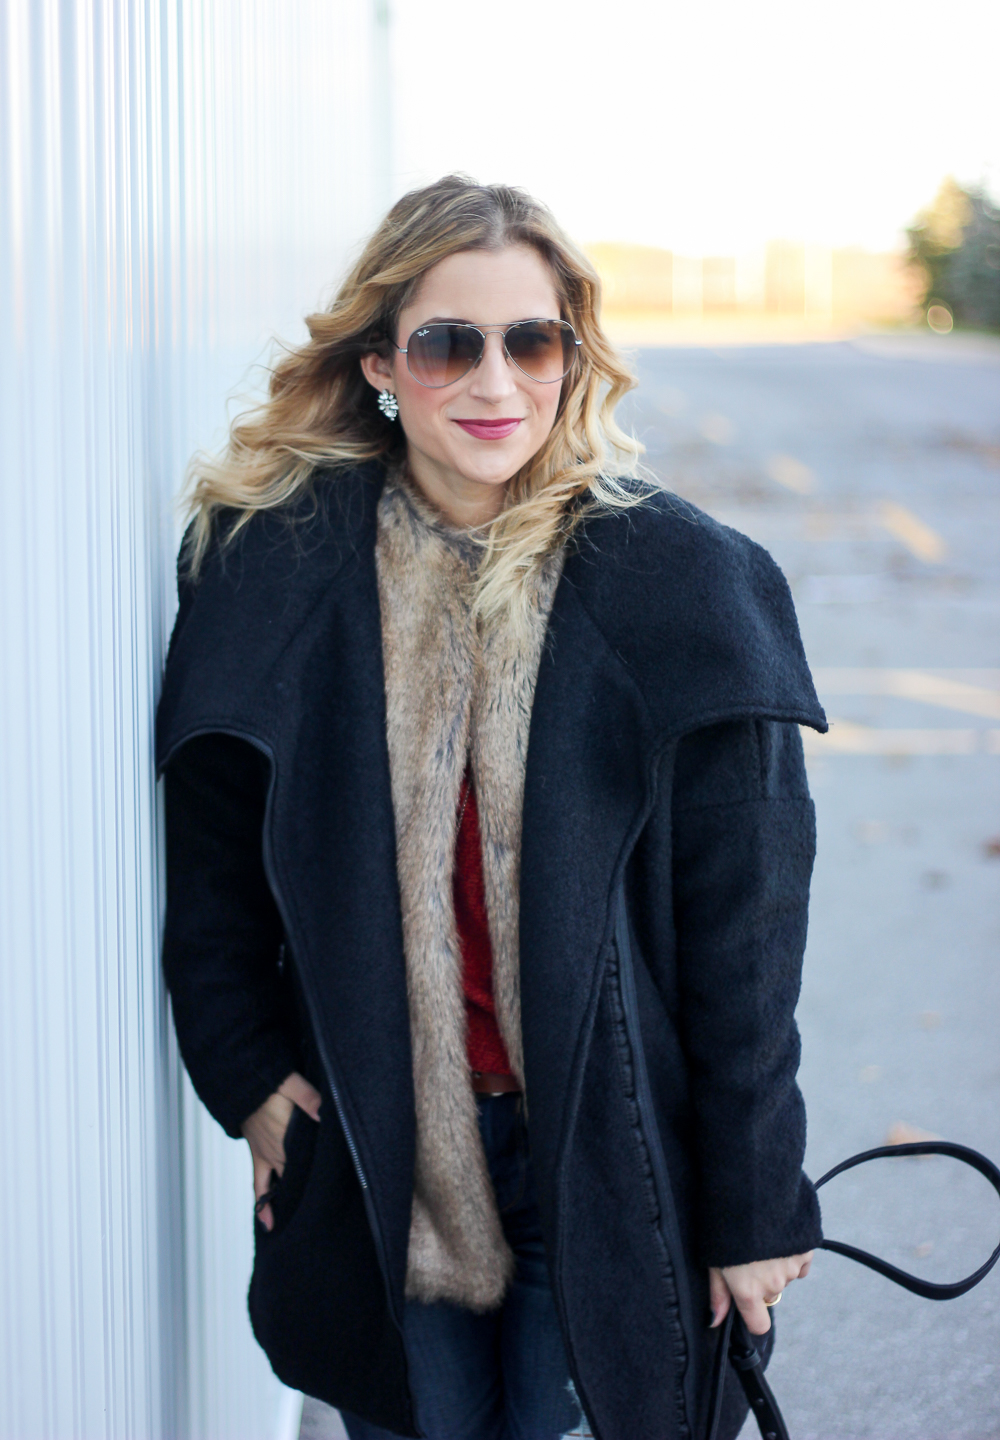 Toronto fashion and lifestyle blogger, Jackie Goldhar, wears the Bench Canada Secure Jacket